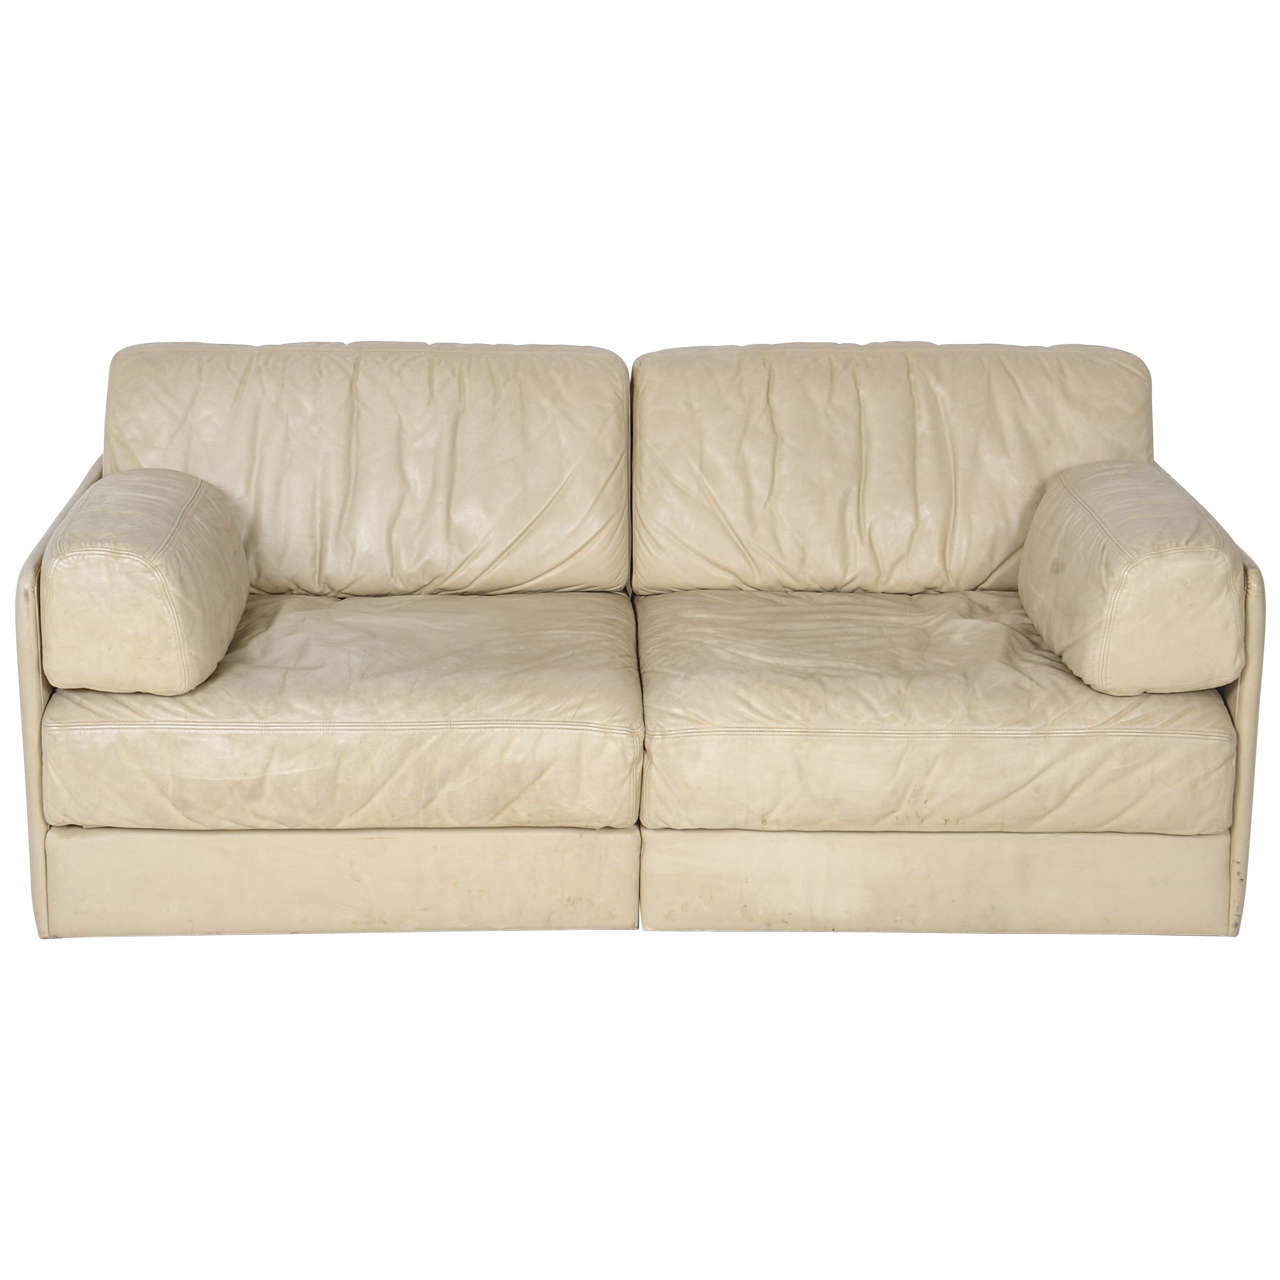 bentley churchill sofa set below 3000 in hyderabad 76 thesofa